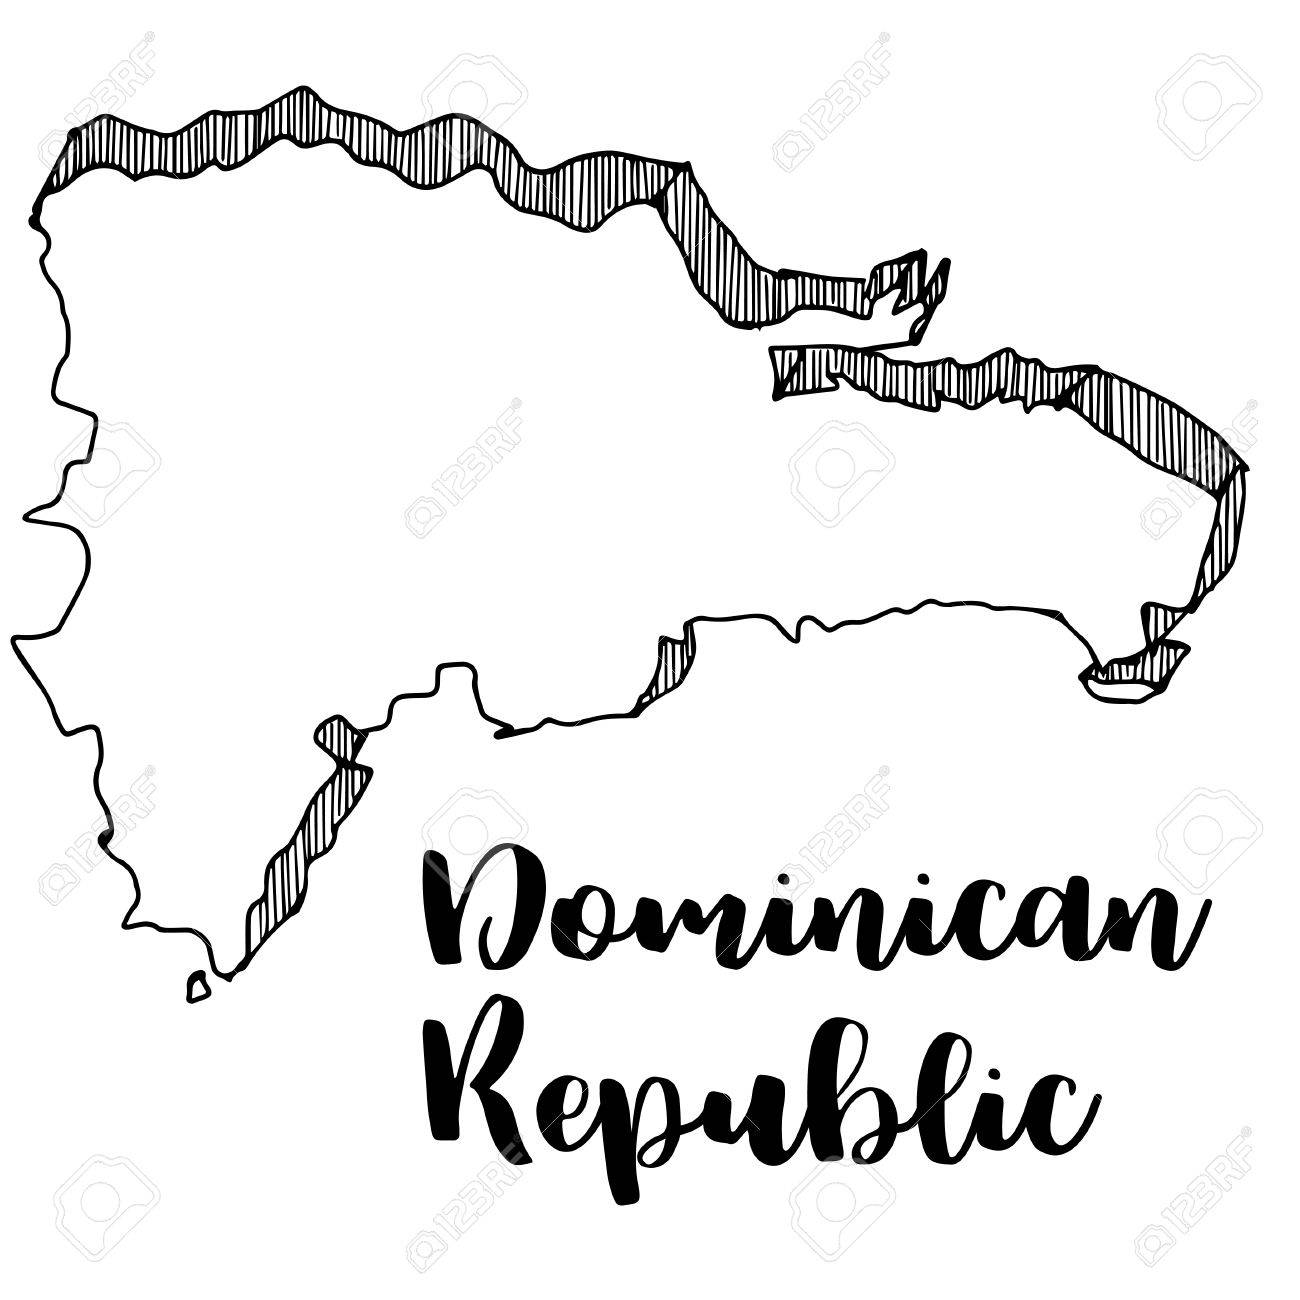 Hand Drawn Of Dominican Republic Map Vector Illustration Royalty - Dominican republic map vector